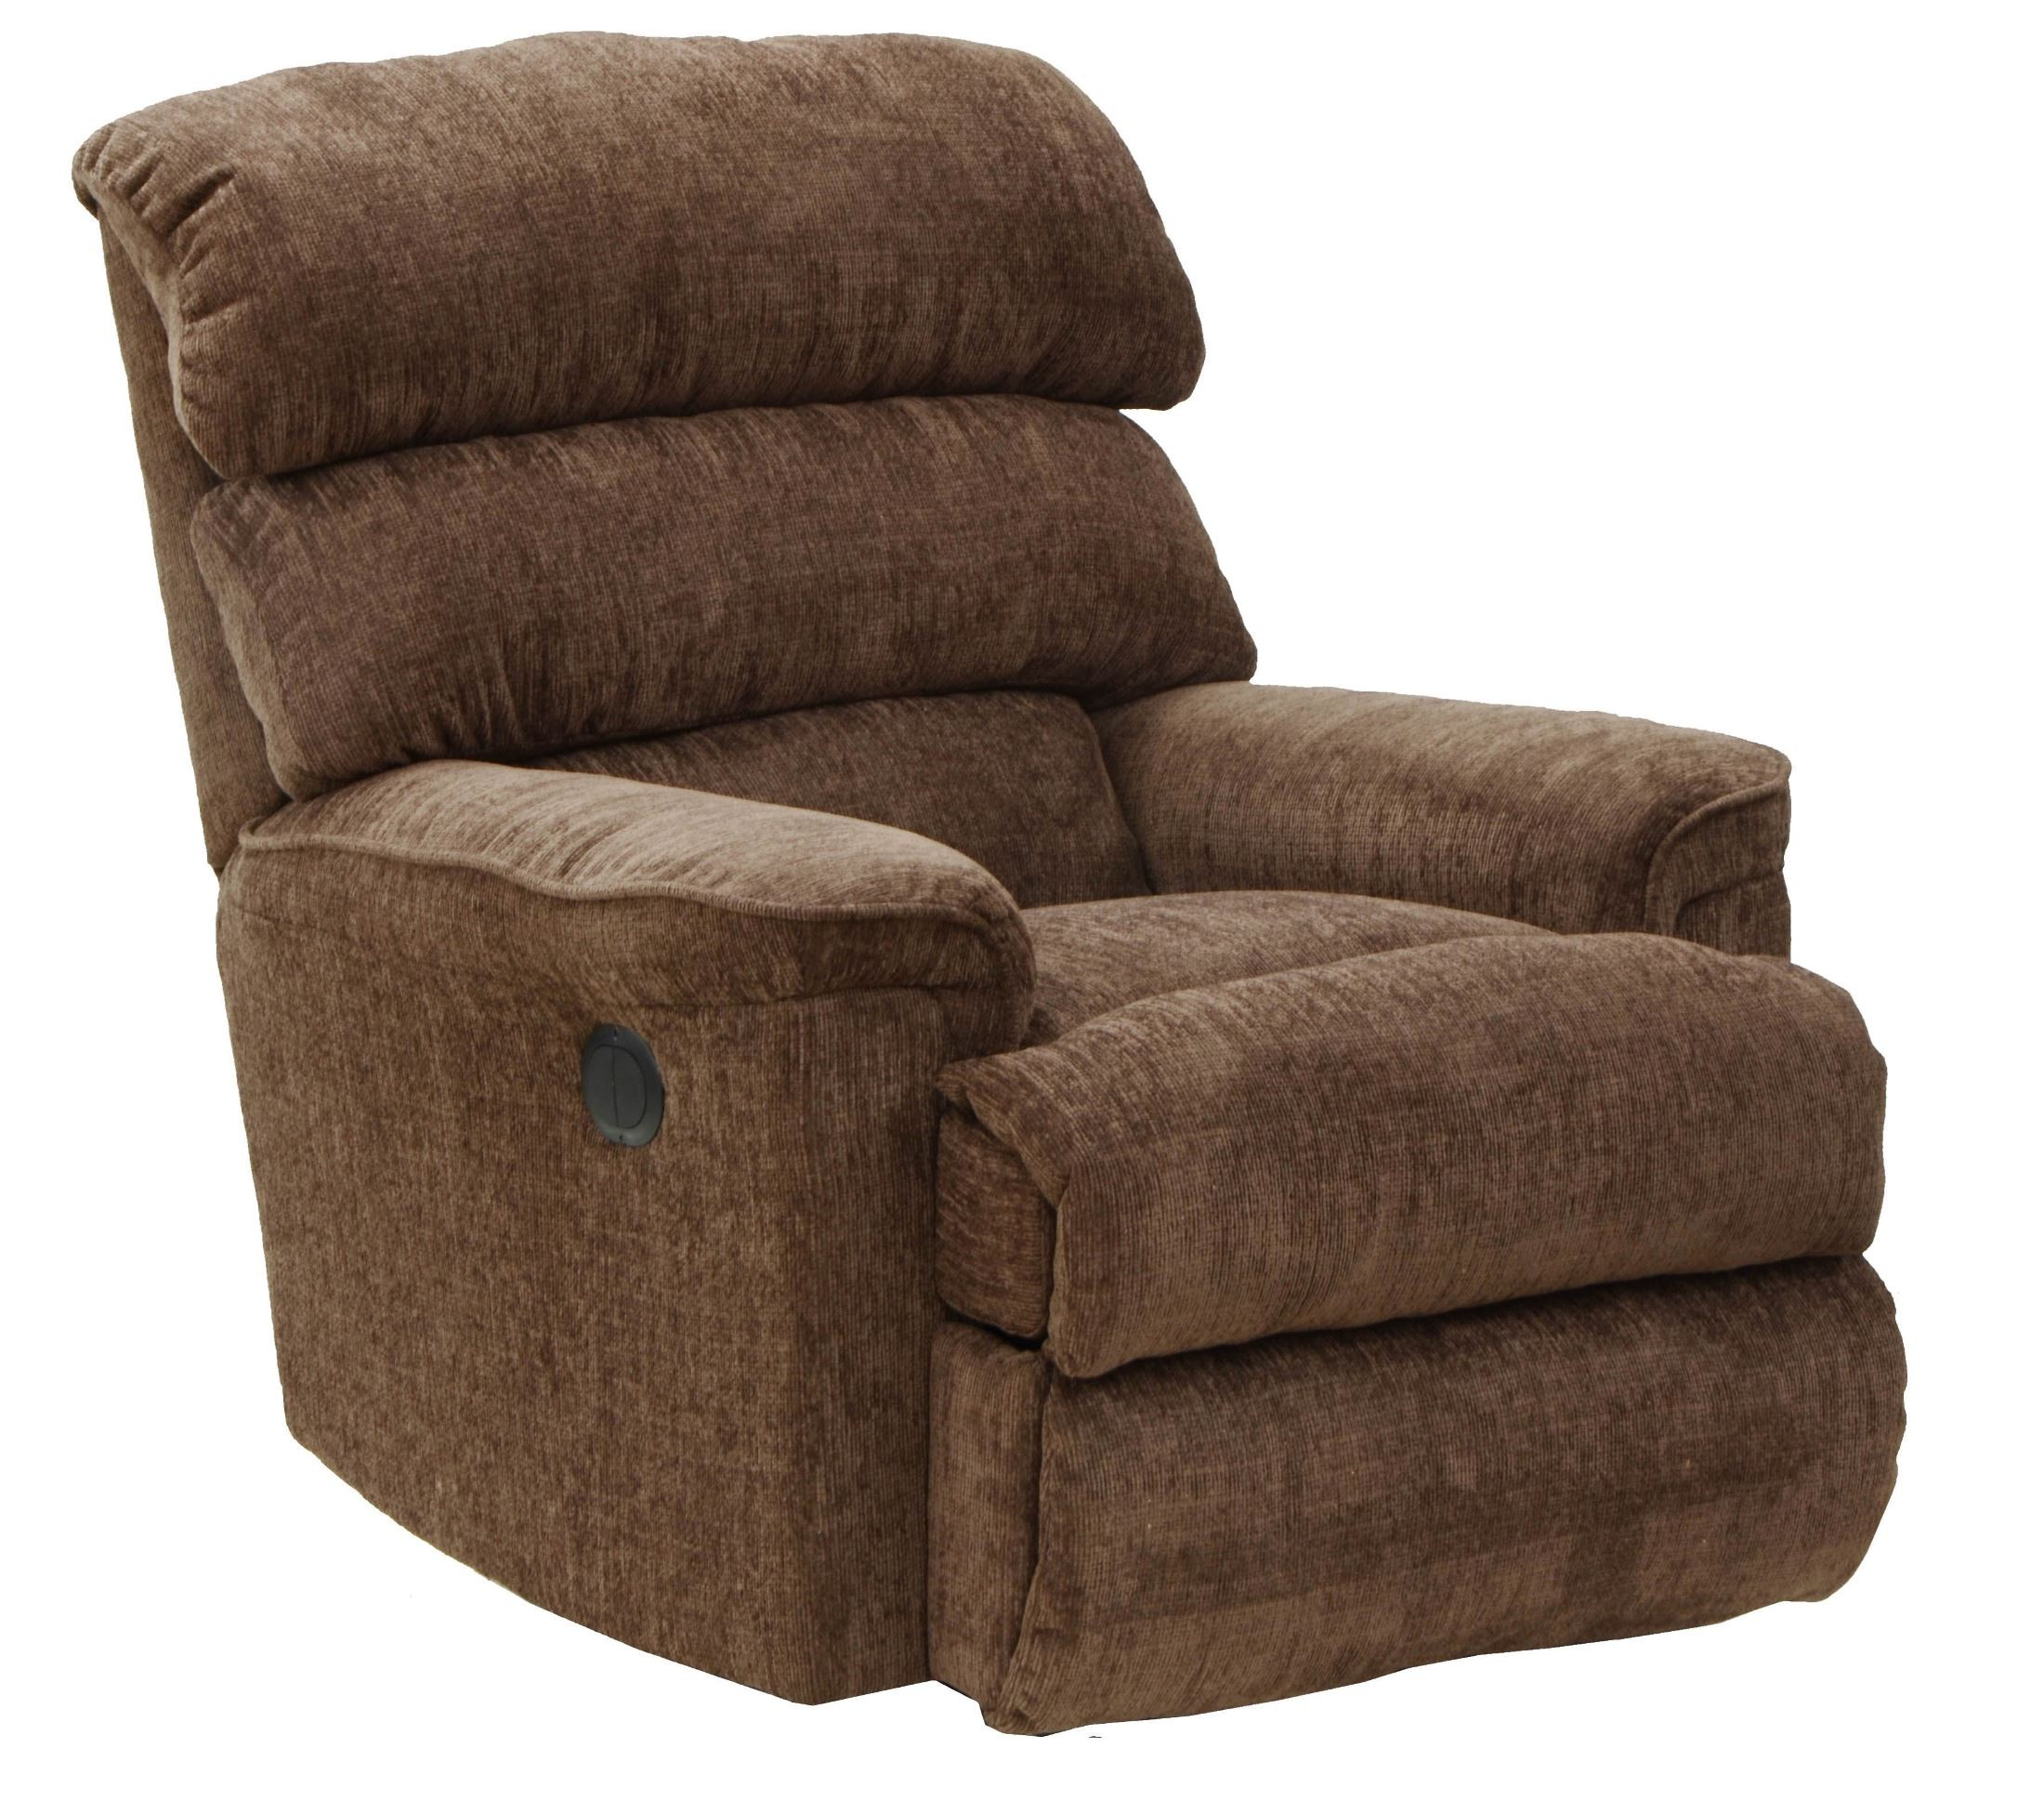 Pearson mocha power recliner from catnapper 647394000000 for Catnapper cloud nine chaise recliner